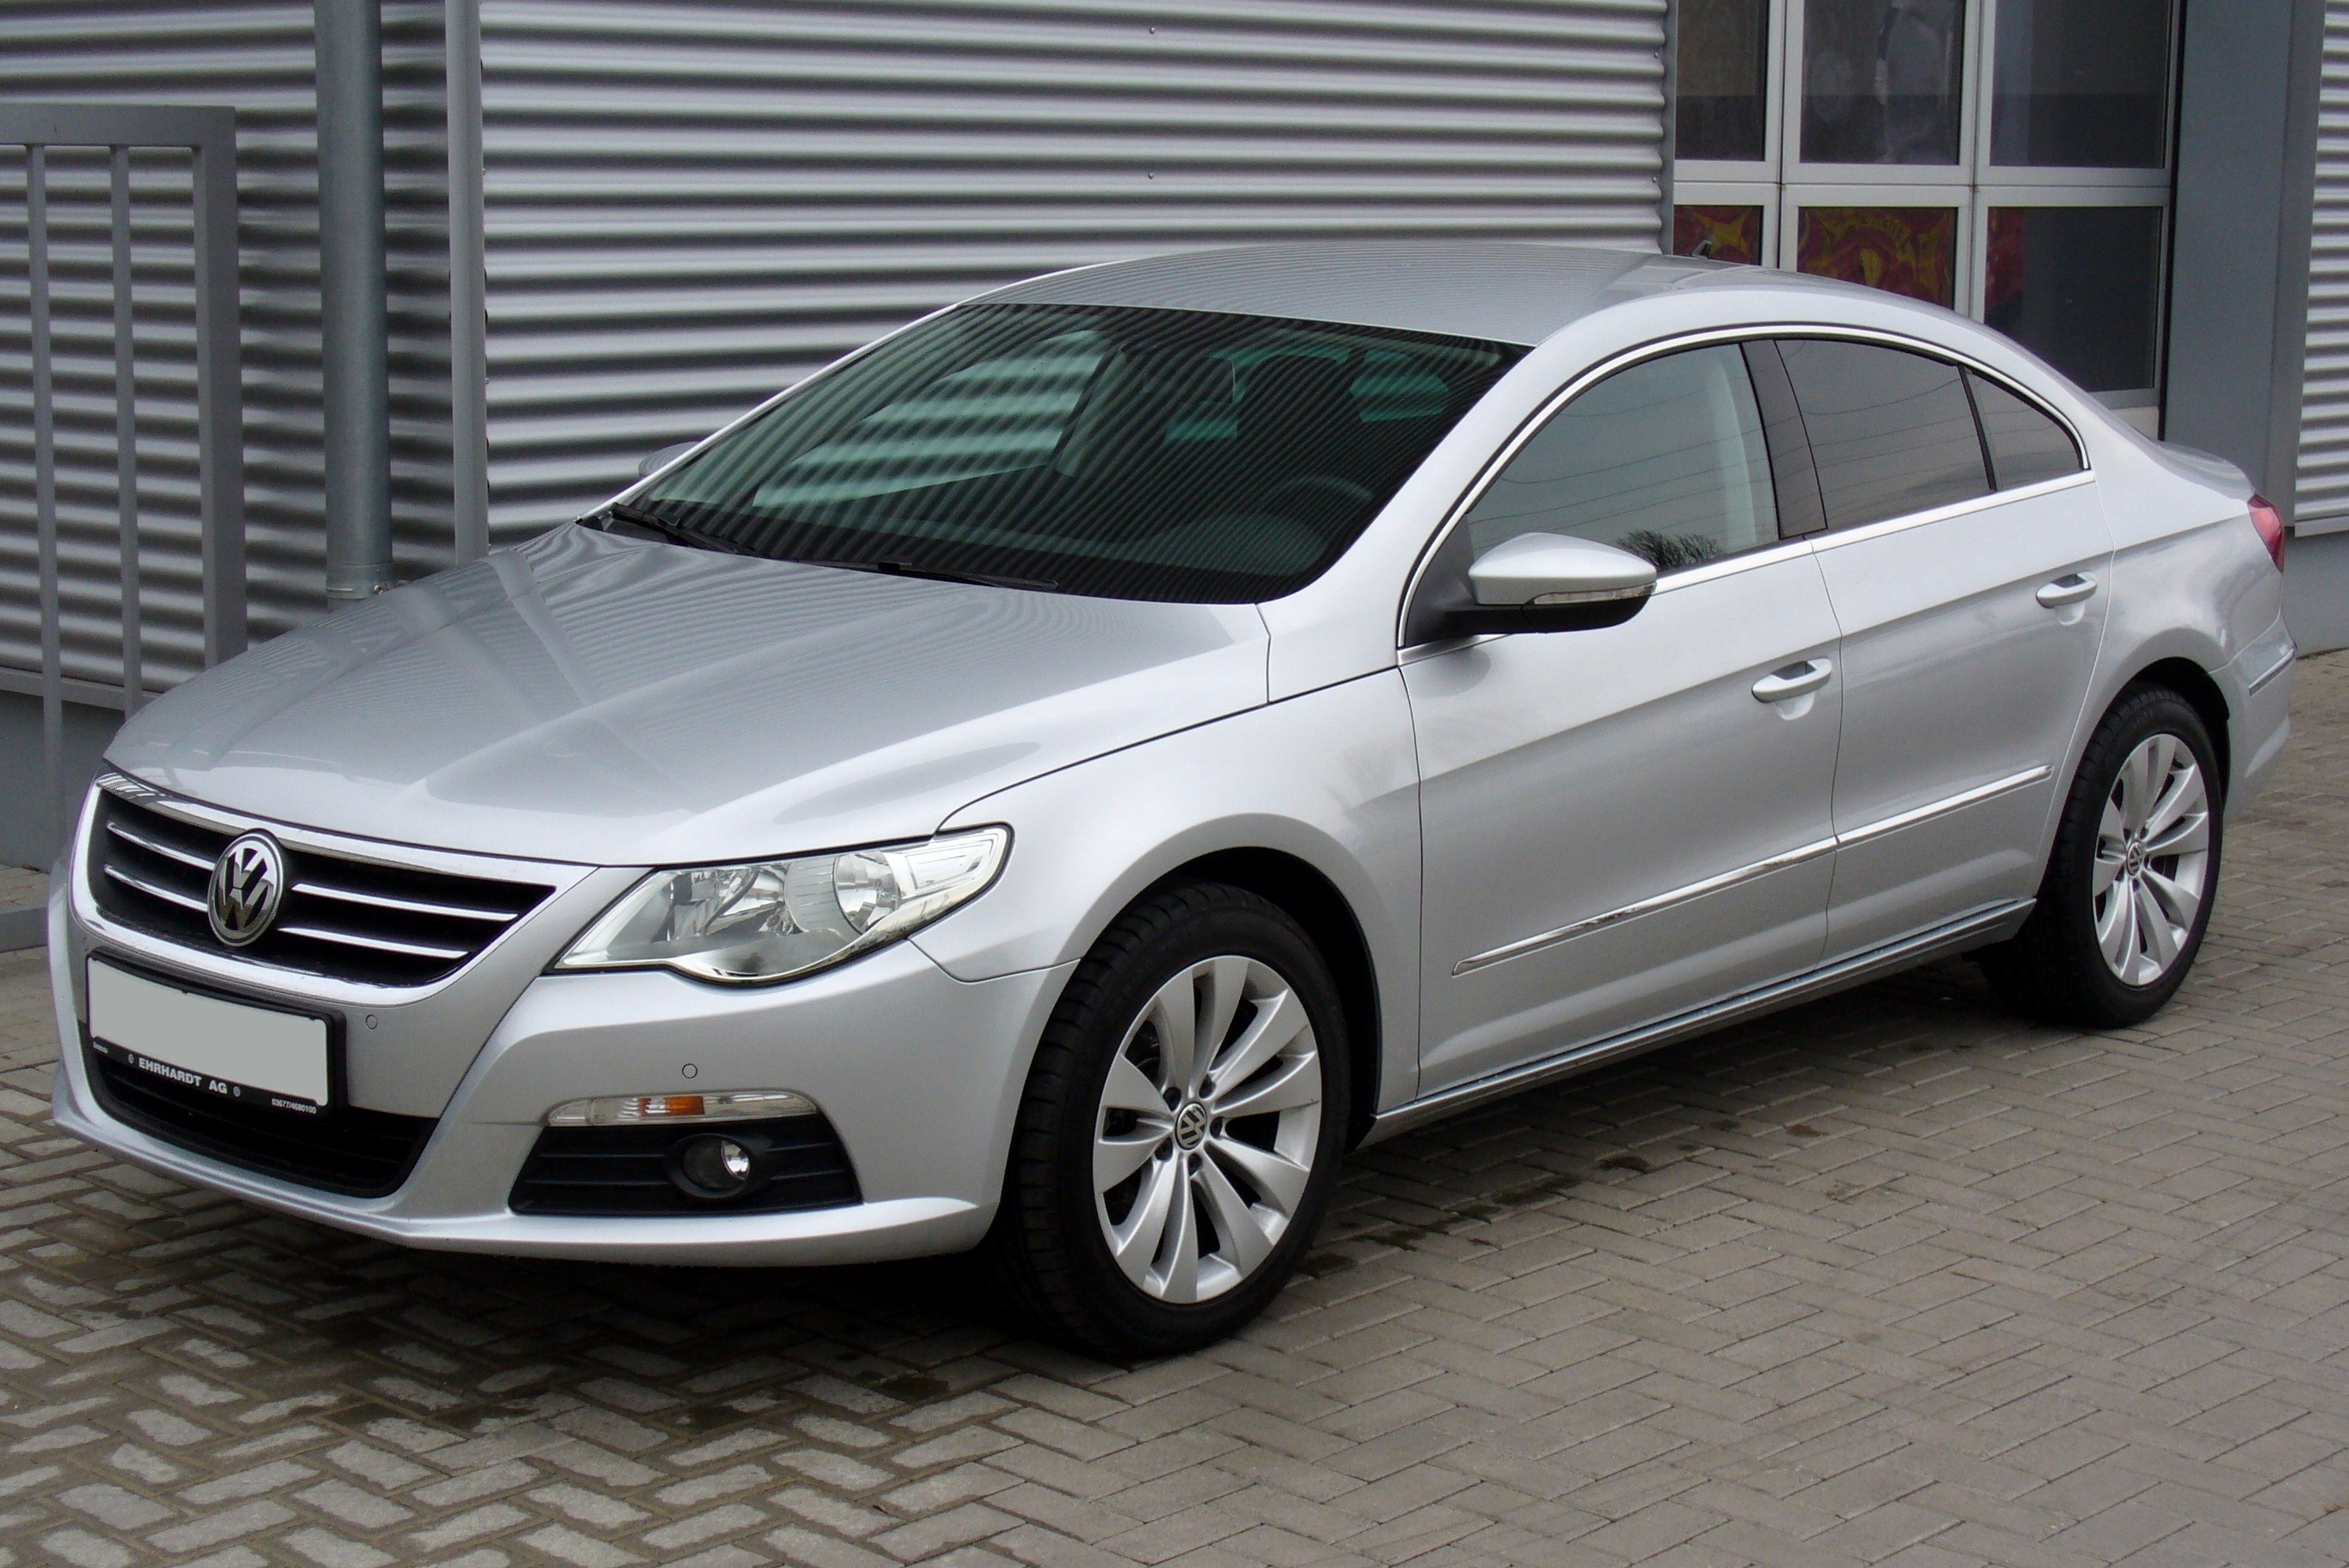 Volkswagen Cc Wikipedia 2013 Passat Engine Diagram